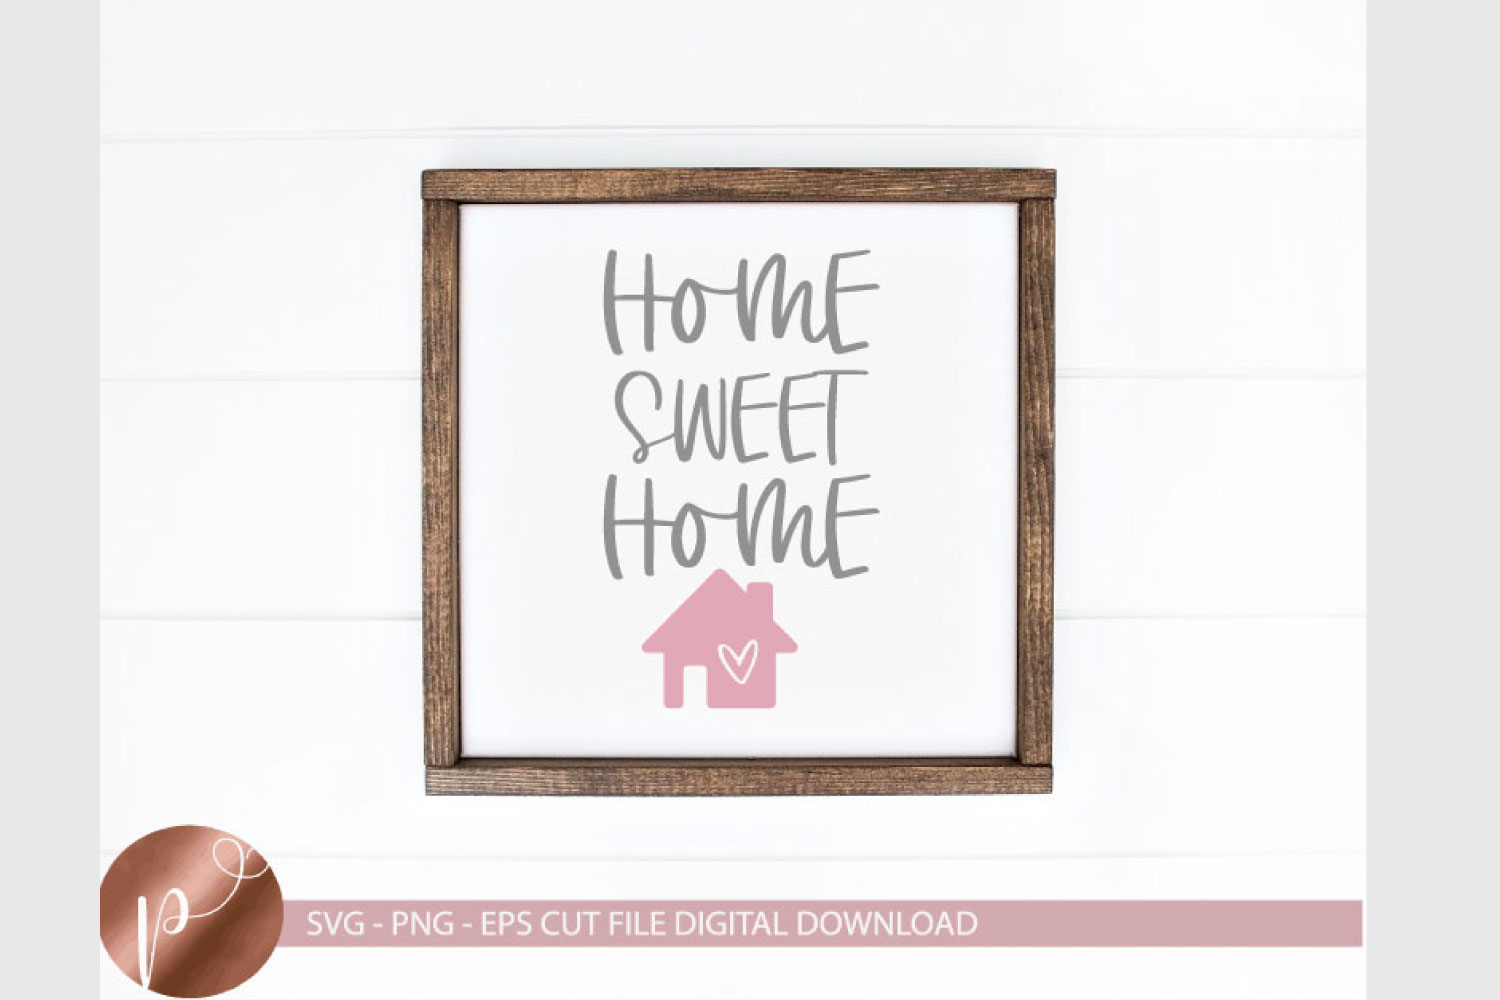 Home Sweet Home svg png eps, Farmhouse Cut File, Wood Sign example image 1